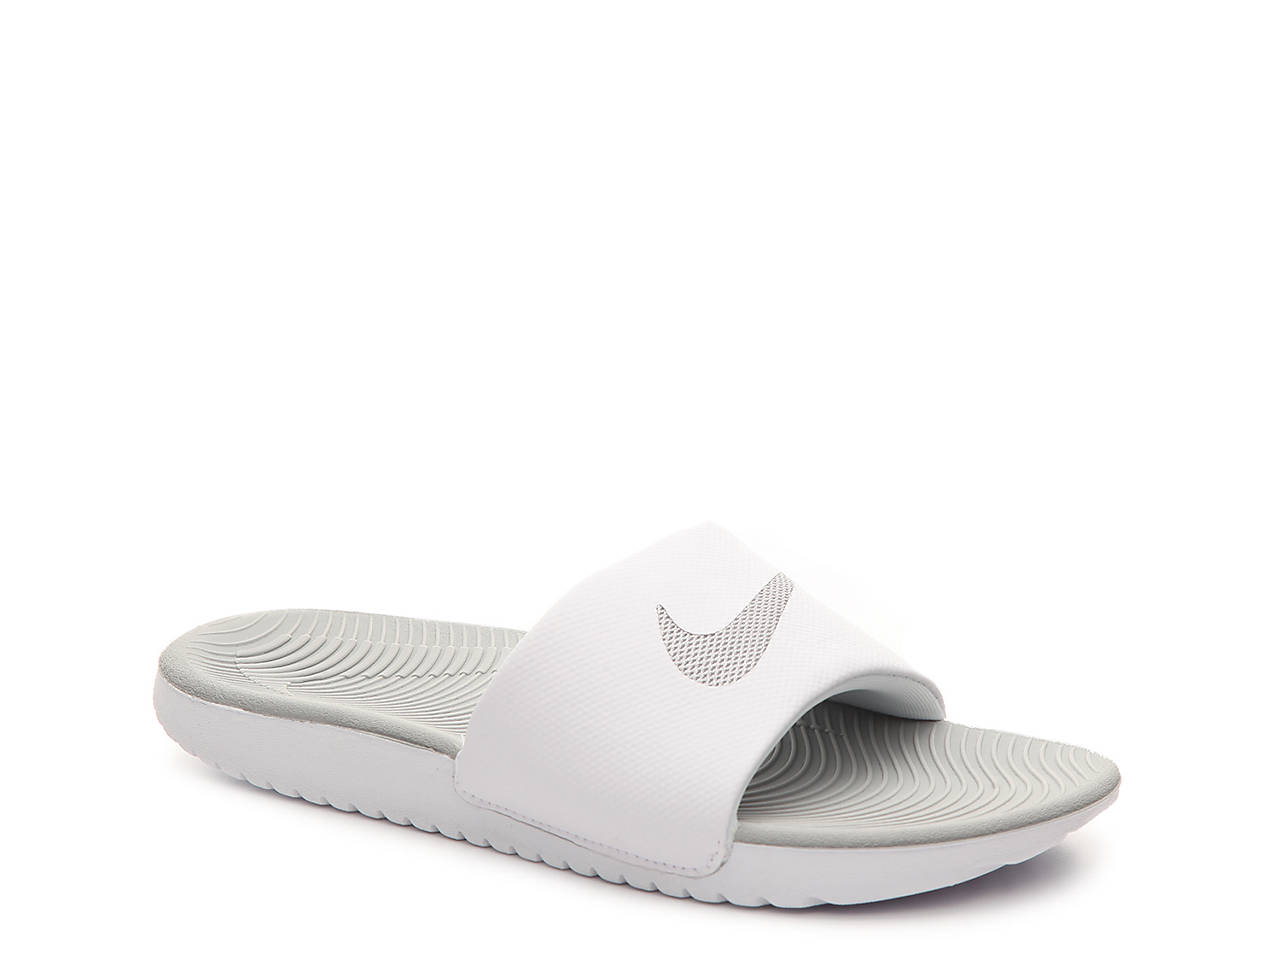 10a7323f0cdd Nike Kawa Slide Sandal - Women s Women s Shoes